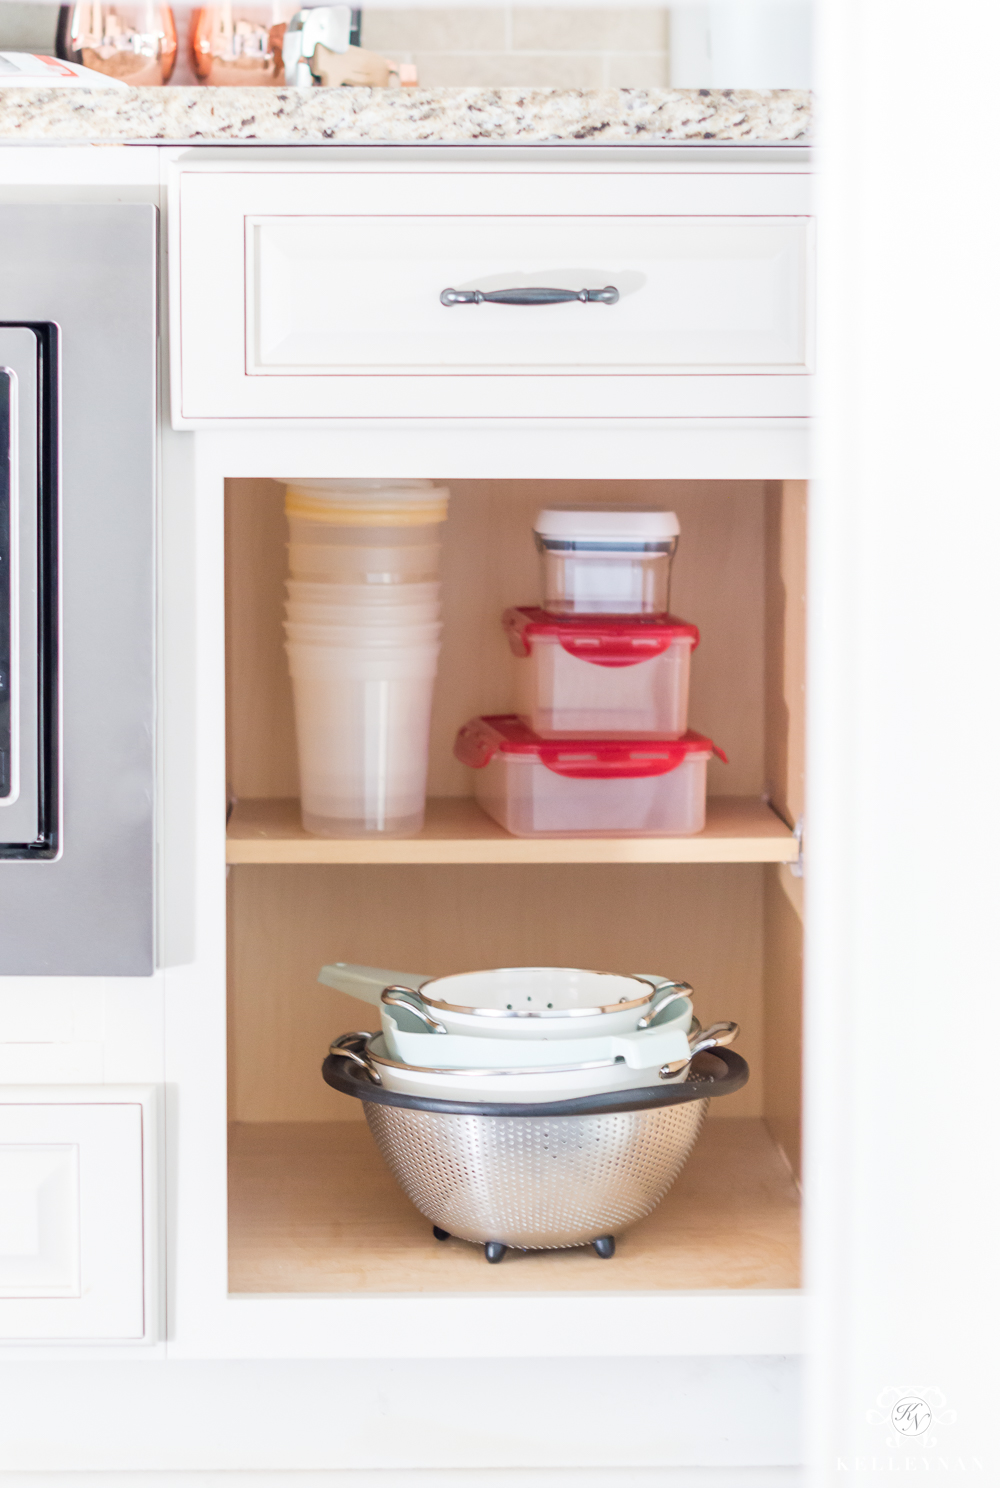 Freezer containers to hold on to when decluttering the kitchen